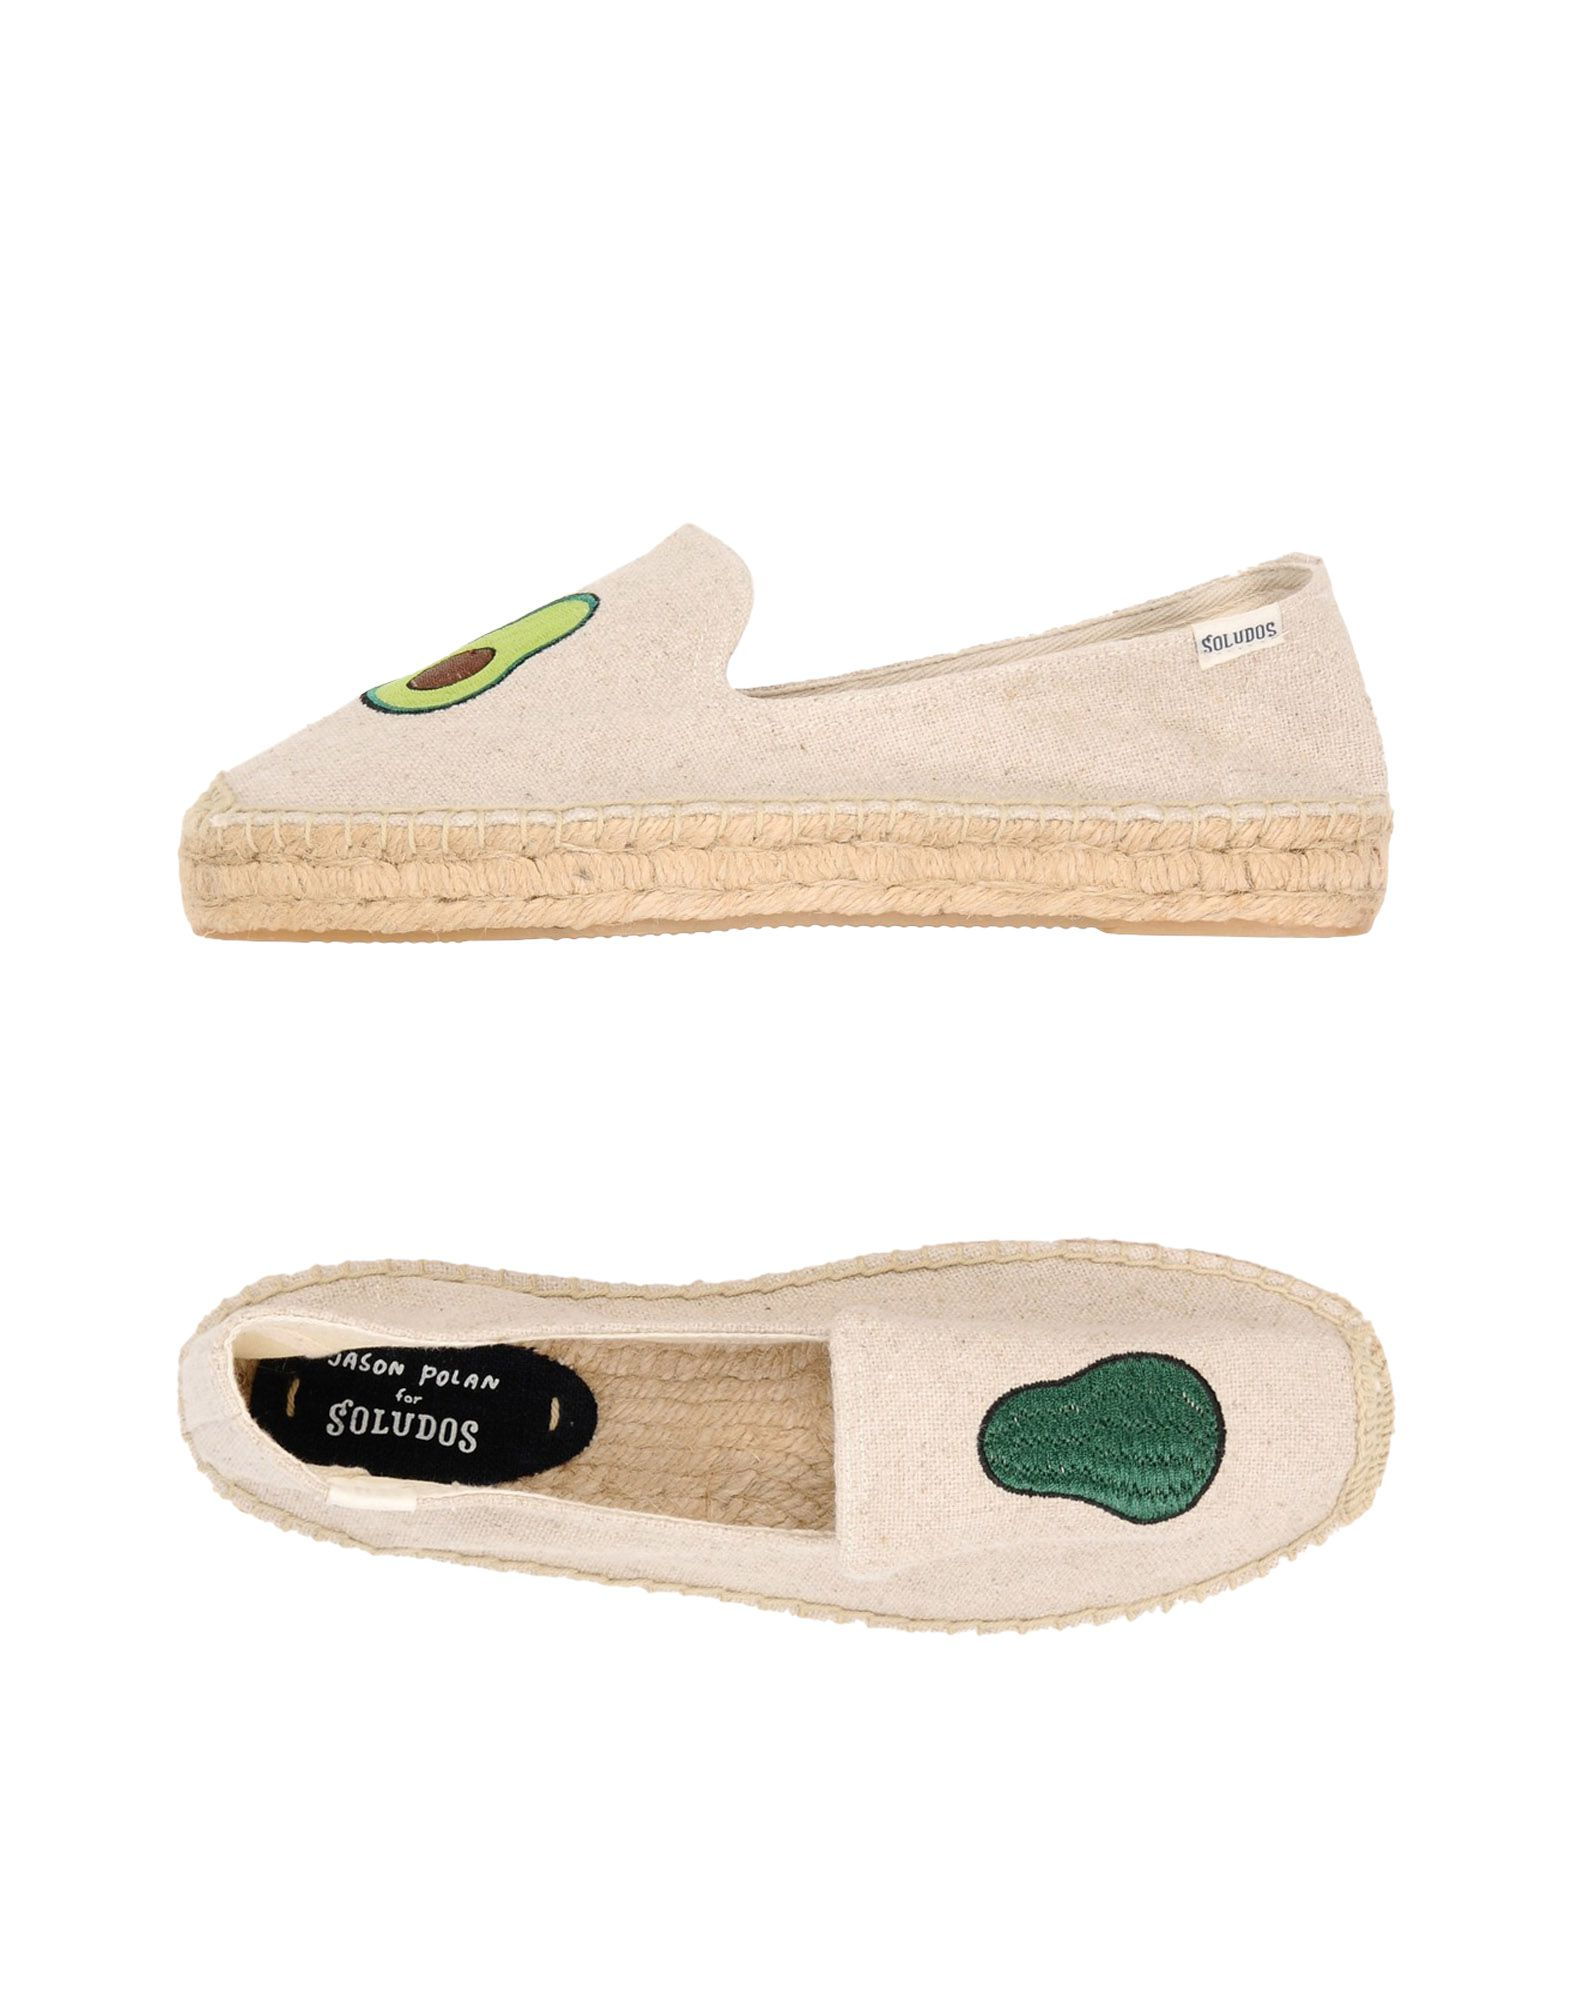 Espadrillas Soludos Jason Polan Avocado Platform Smoking Slipper - Donna - Acquista online su